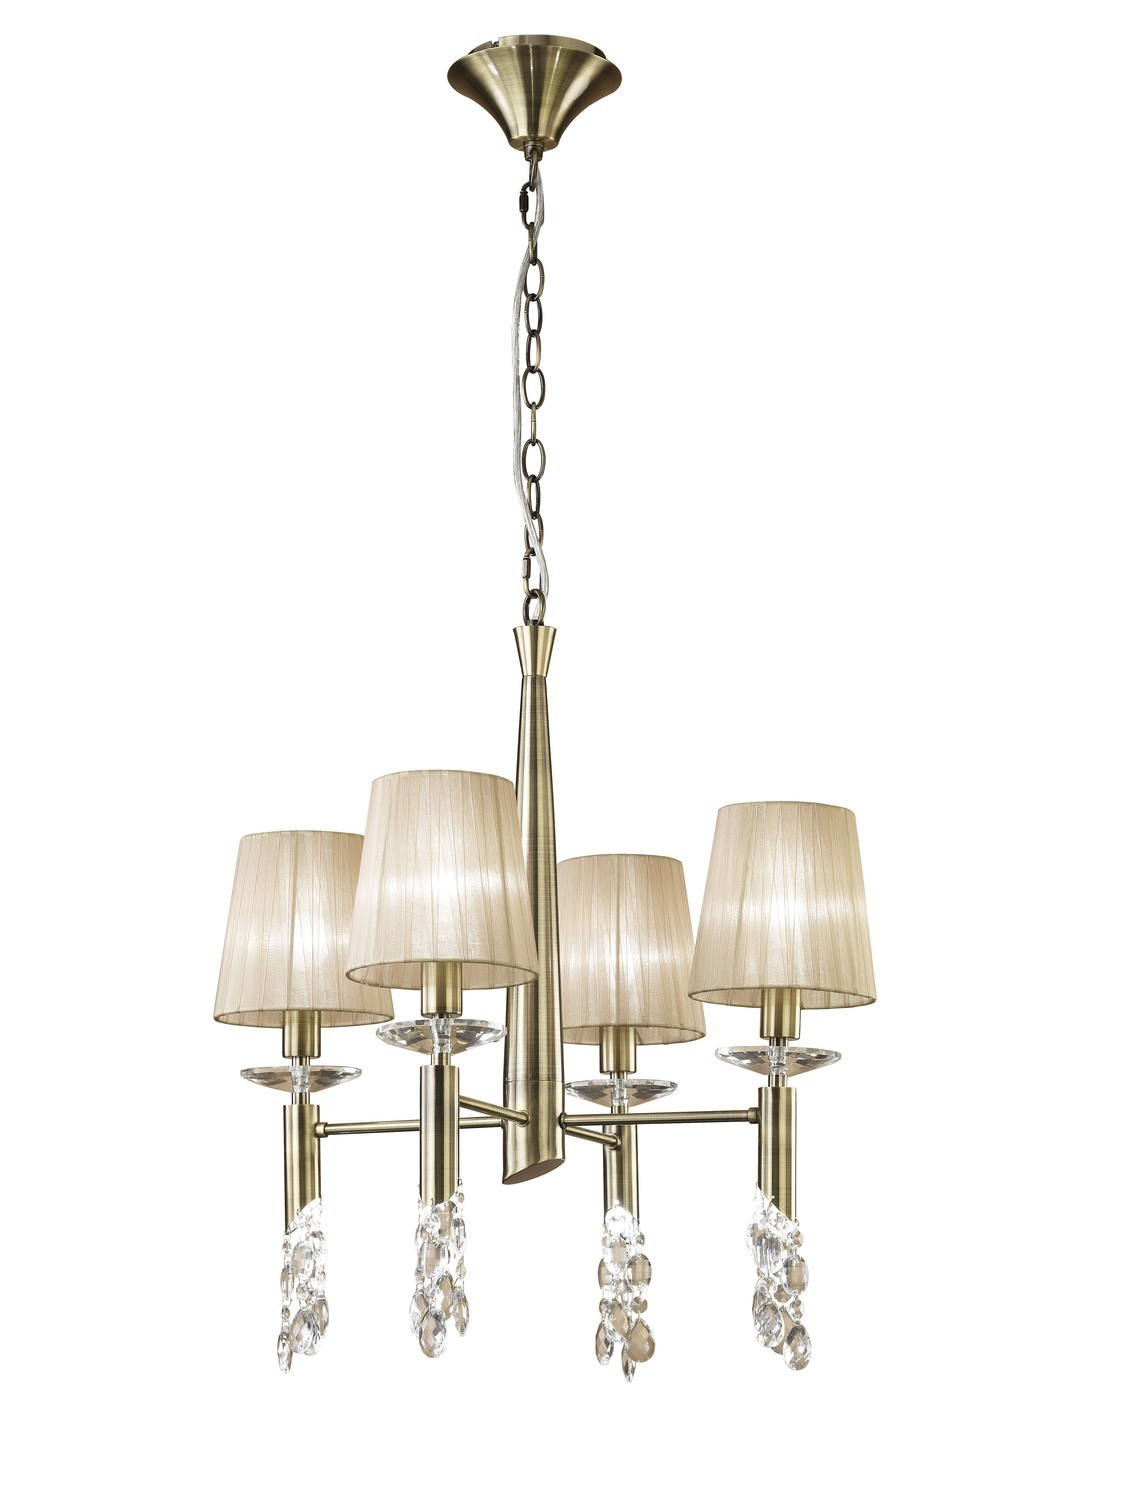 Tiffany Pendant 4+4 Light E14+G9, Antique Brass With Soft Bronze Shades & Clear Crystal